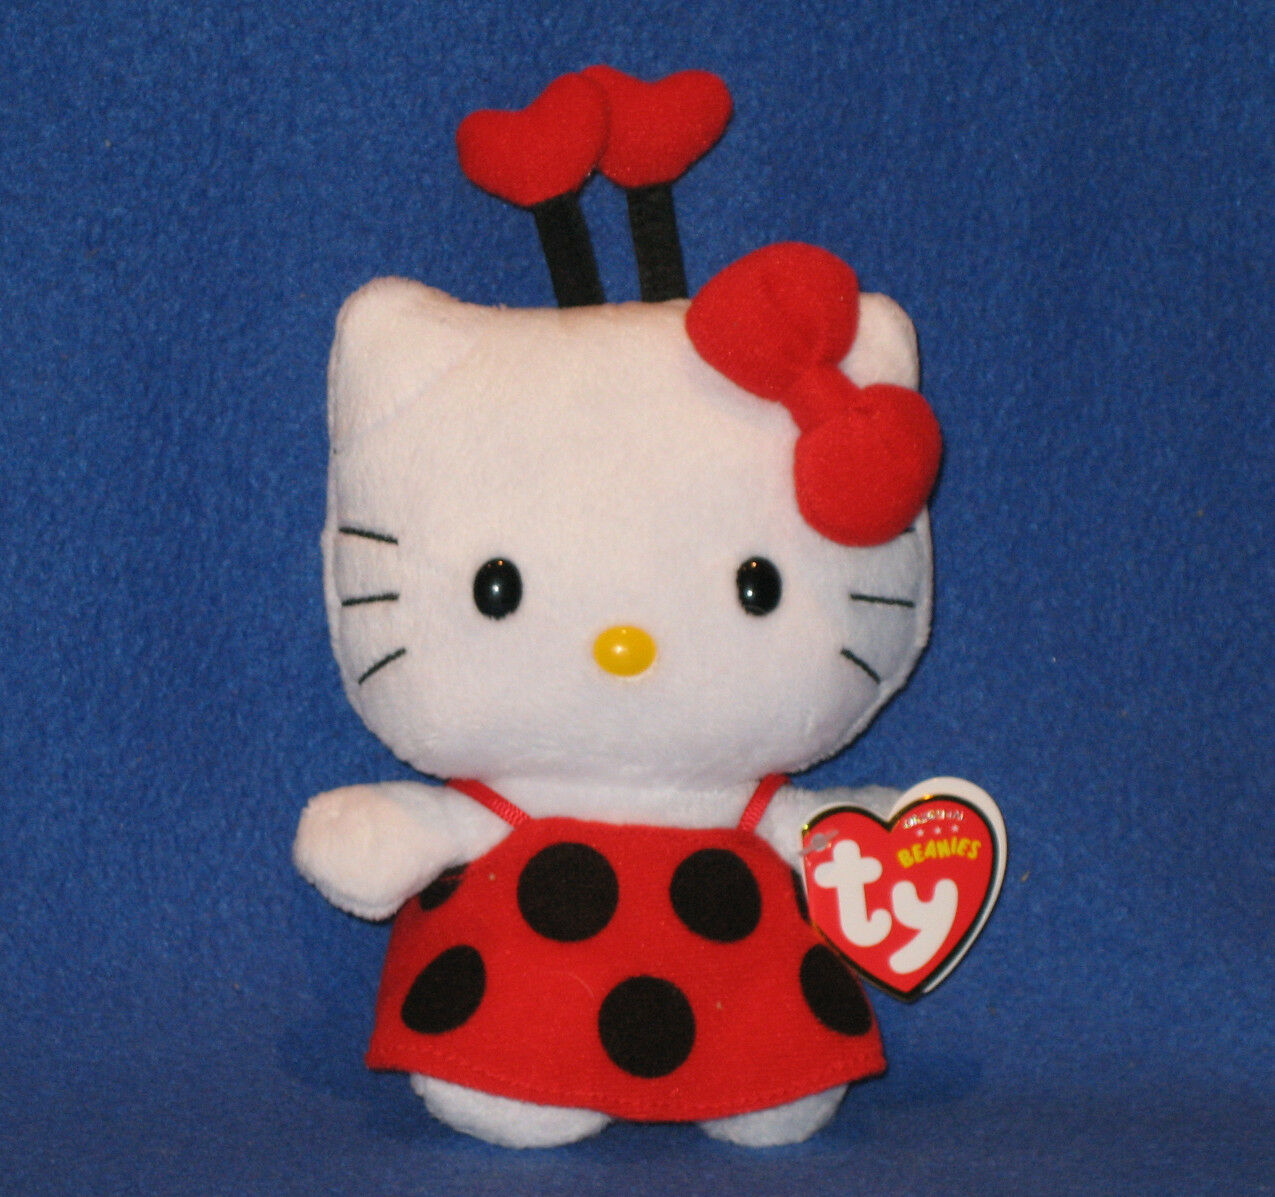 TY HELLO KITTY LADYBUG BEANIE BABY - NEW - MINT with MINT TAGS - UK EXCLUSIVE